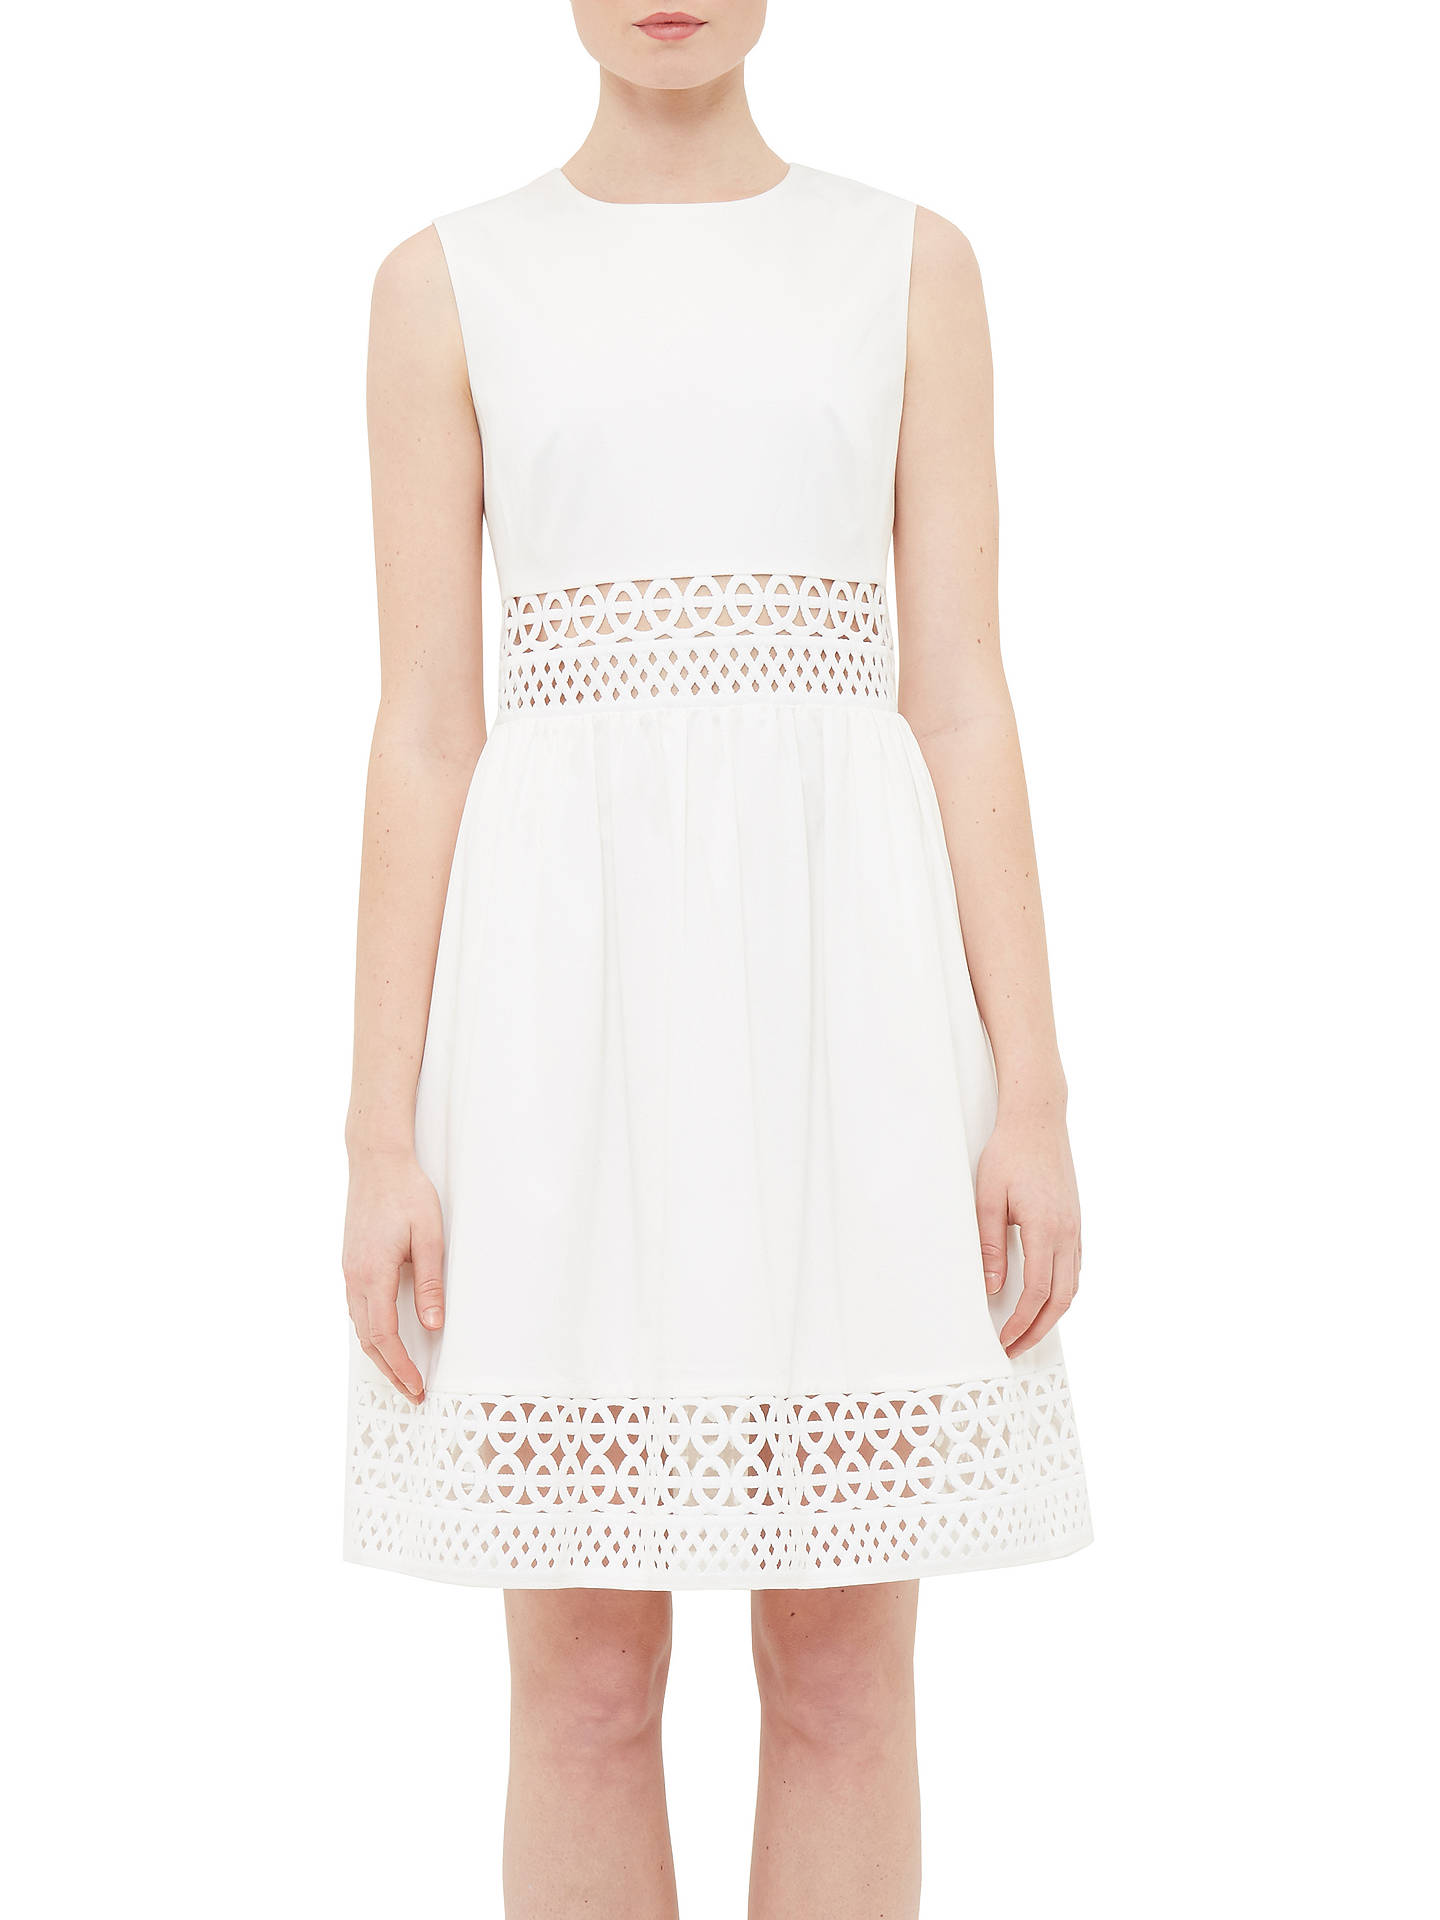 67a17d88f Ted Baker Dayzey A-Line Lace Panel Dress at John Lewis   Partners